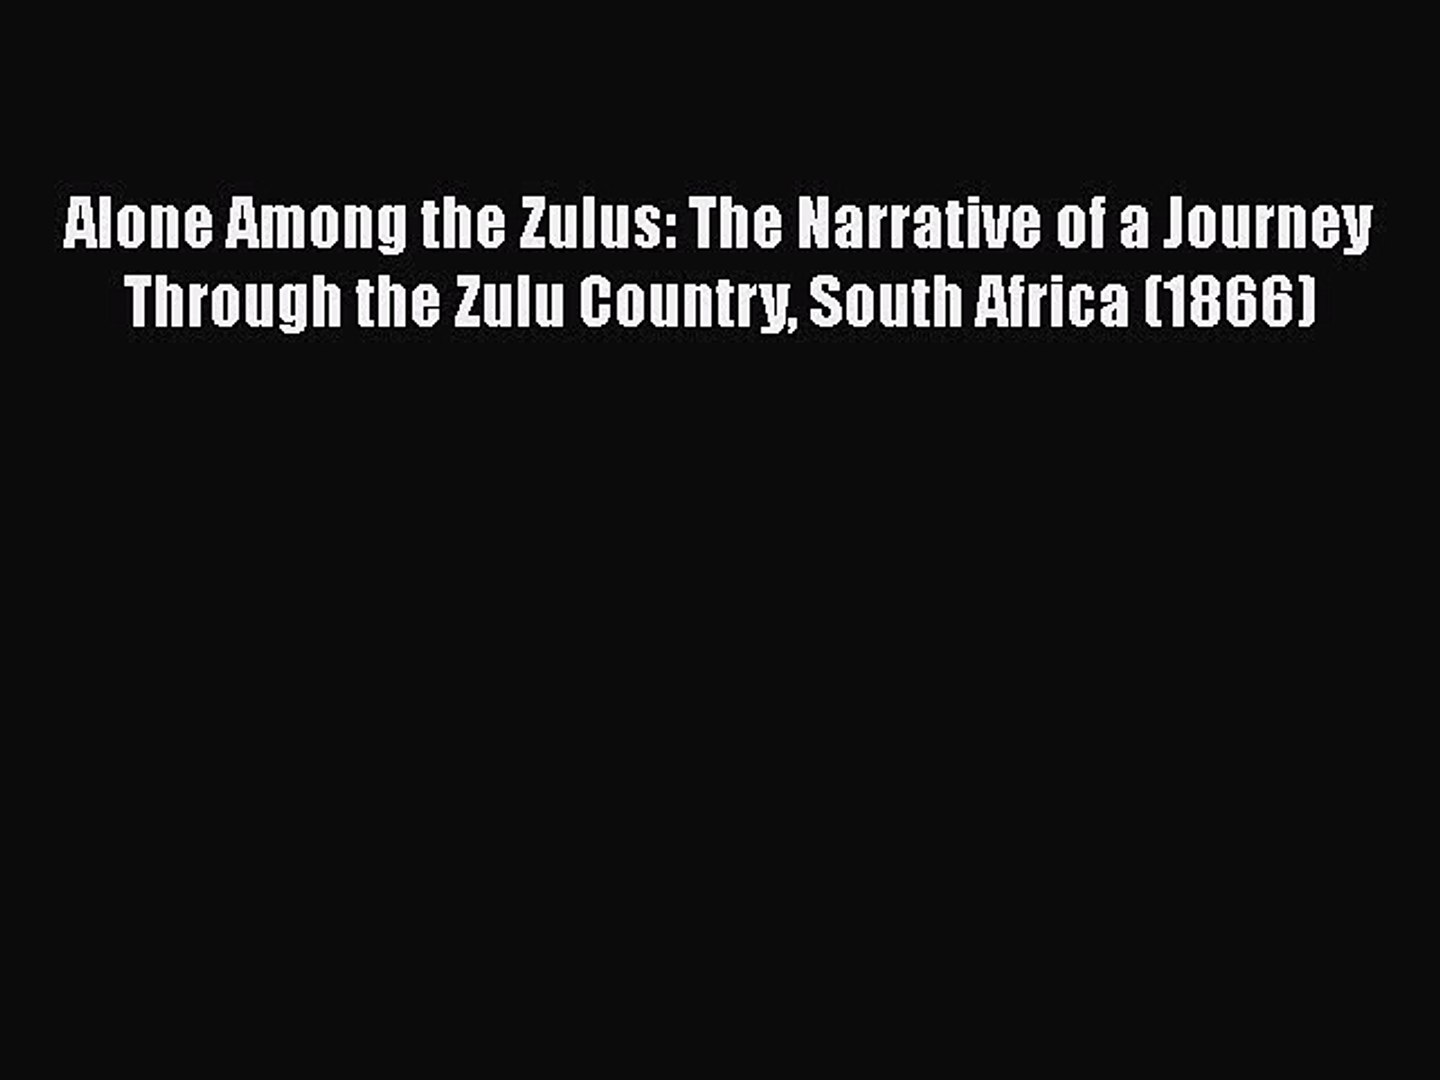 PDF Alone Among the Zulus: The Narrative of a Journey Through the Zulu Country South Africa